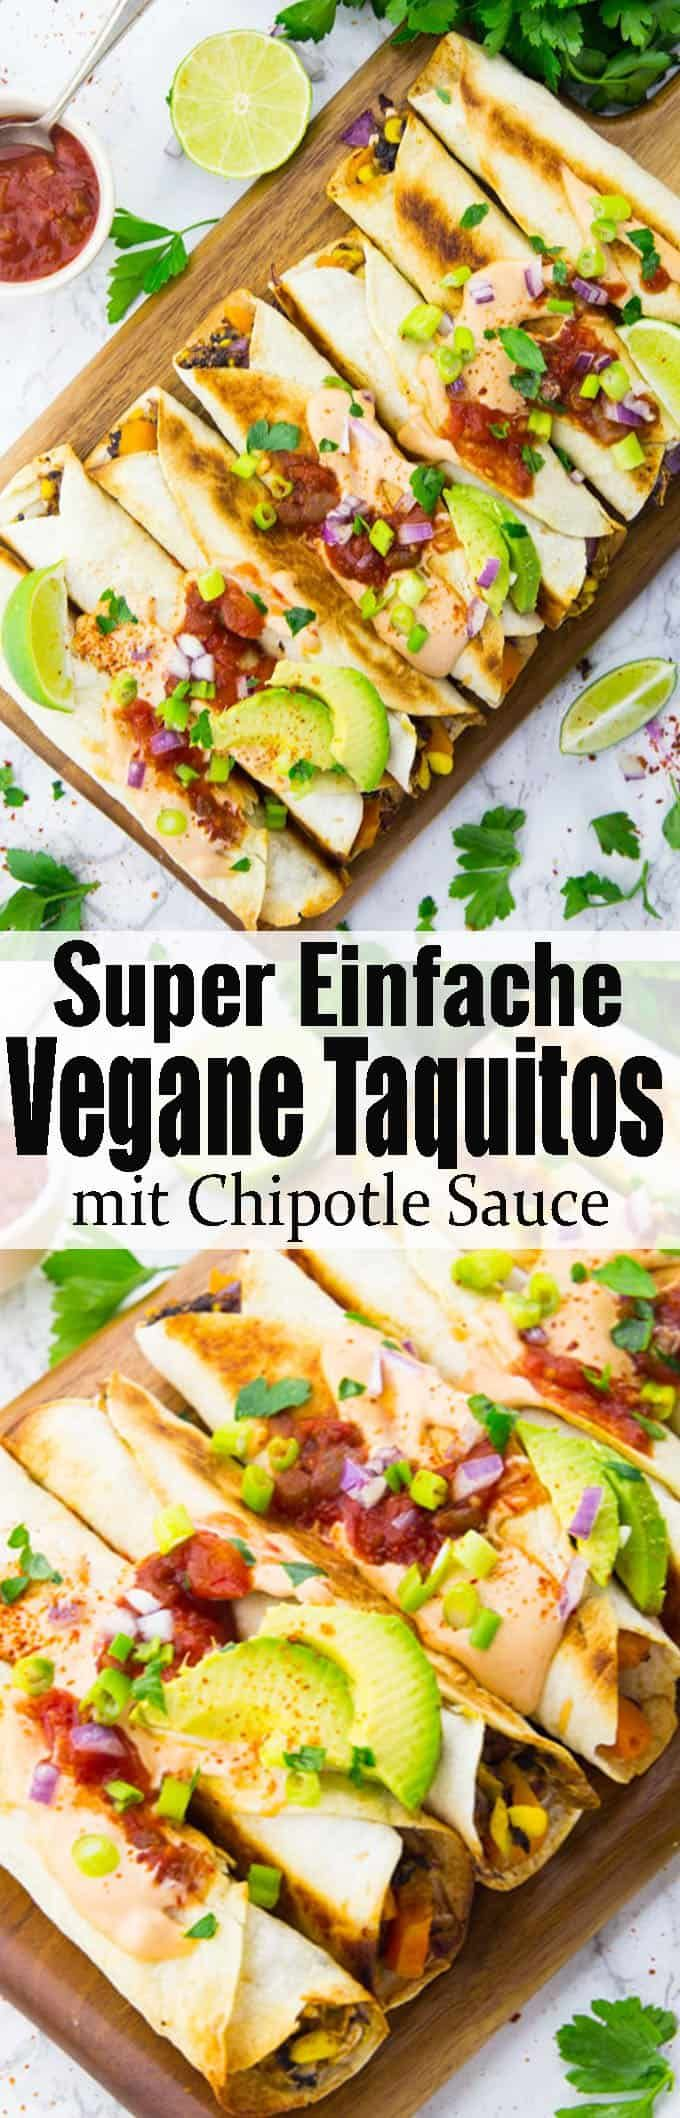 Taquitos with chipotle sauce